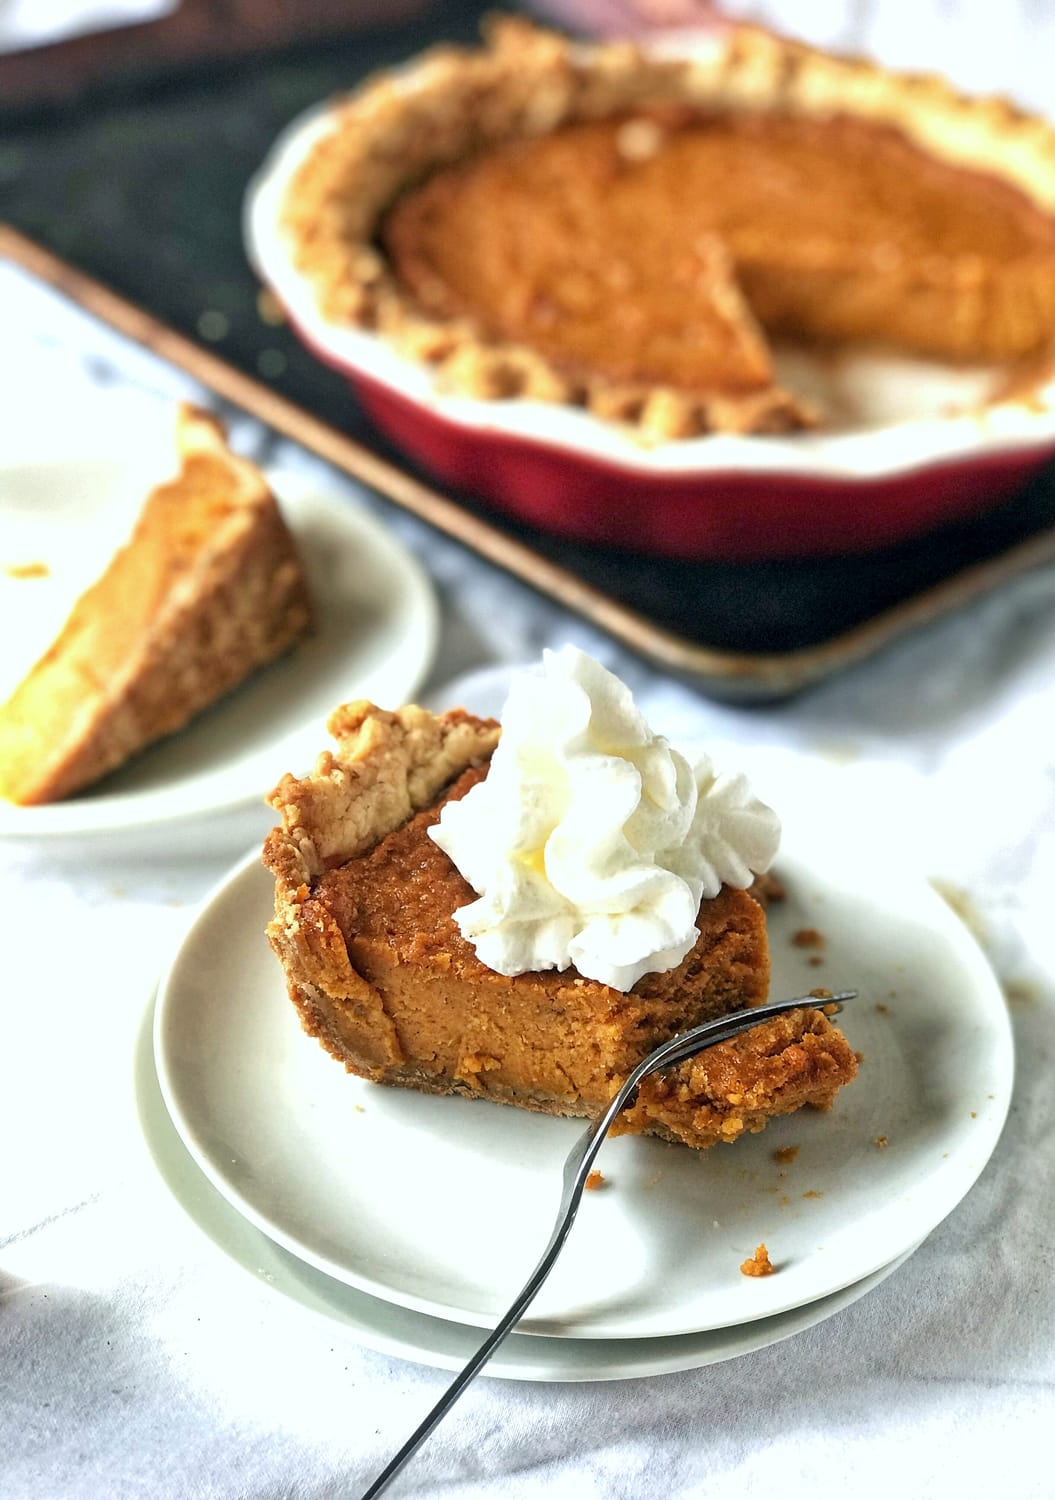 The real deal. The classic. Learn how to make the best, authentic, southern sweet potato pie with my two techniques and one special ingredient that'll blow any other recipe out of the water.